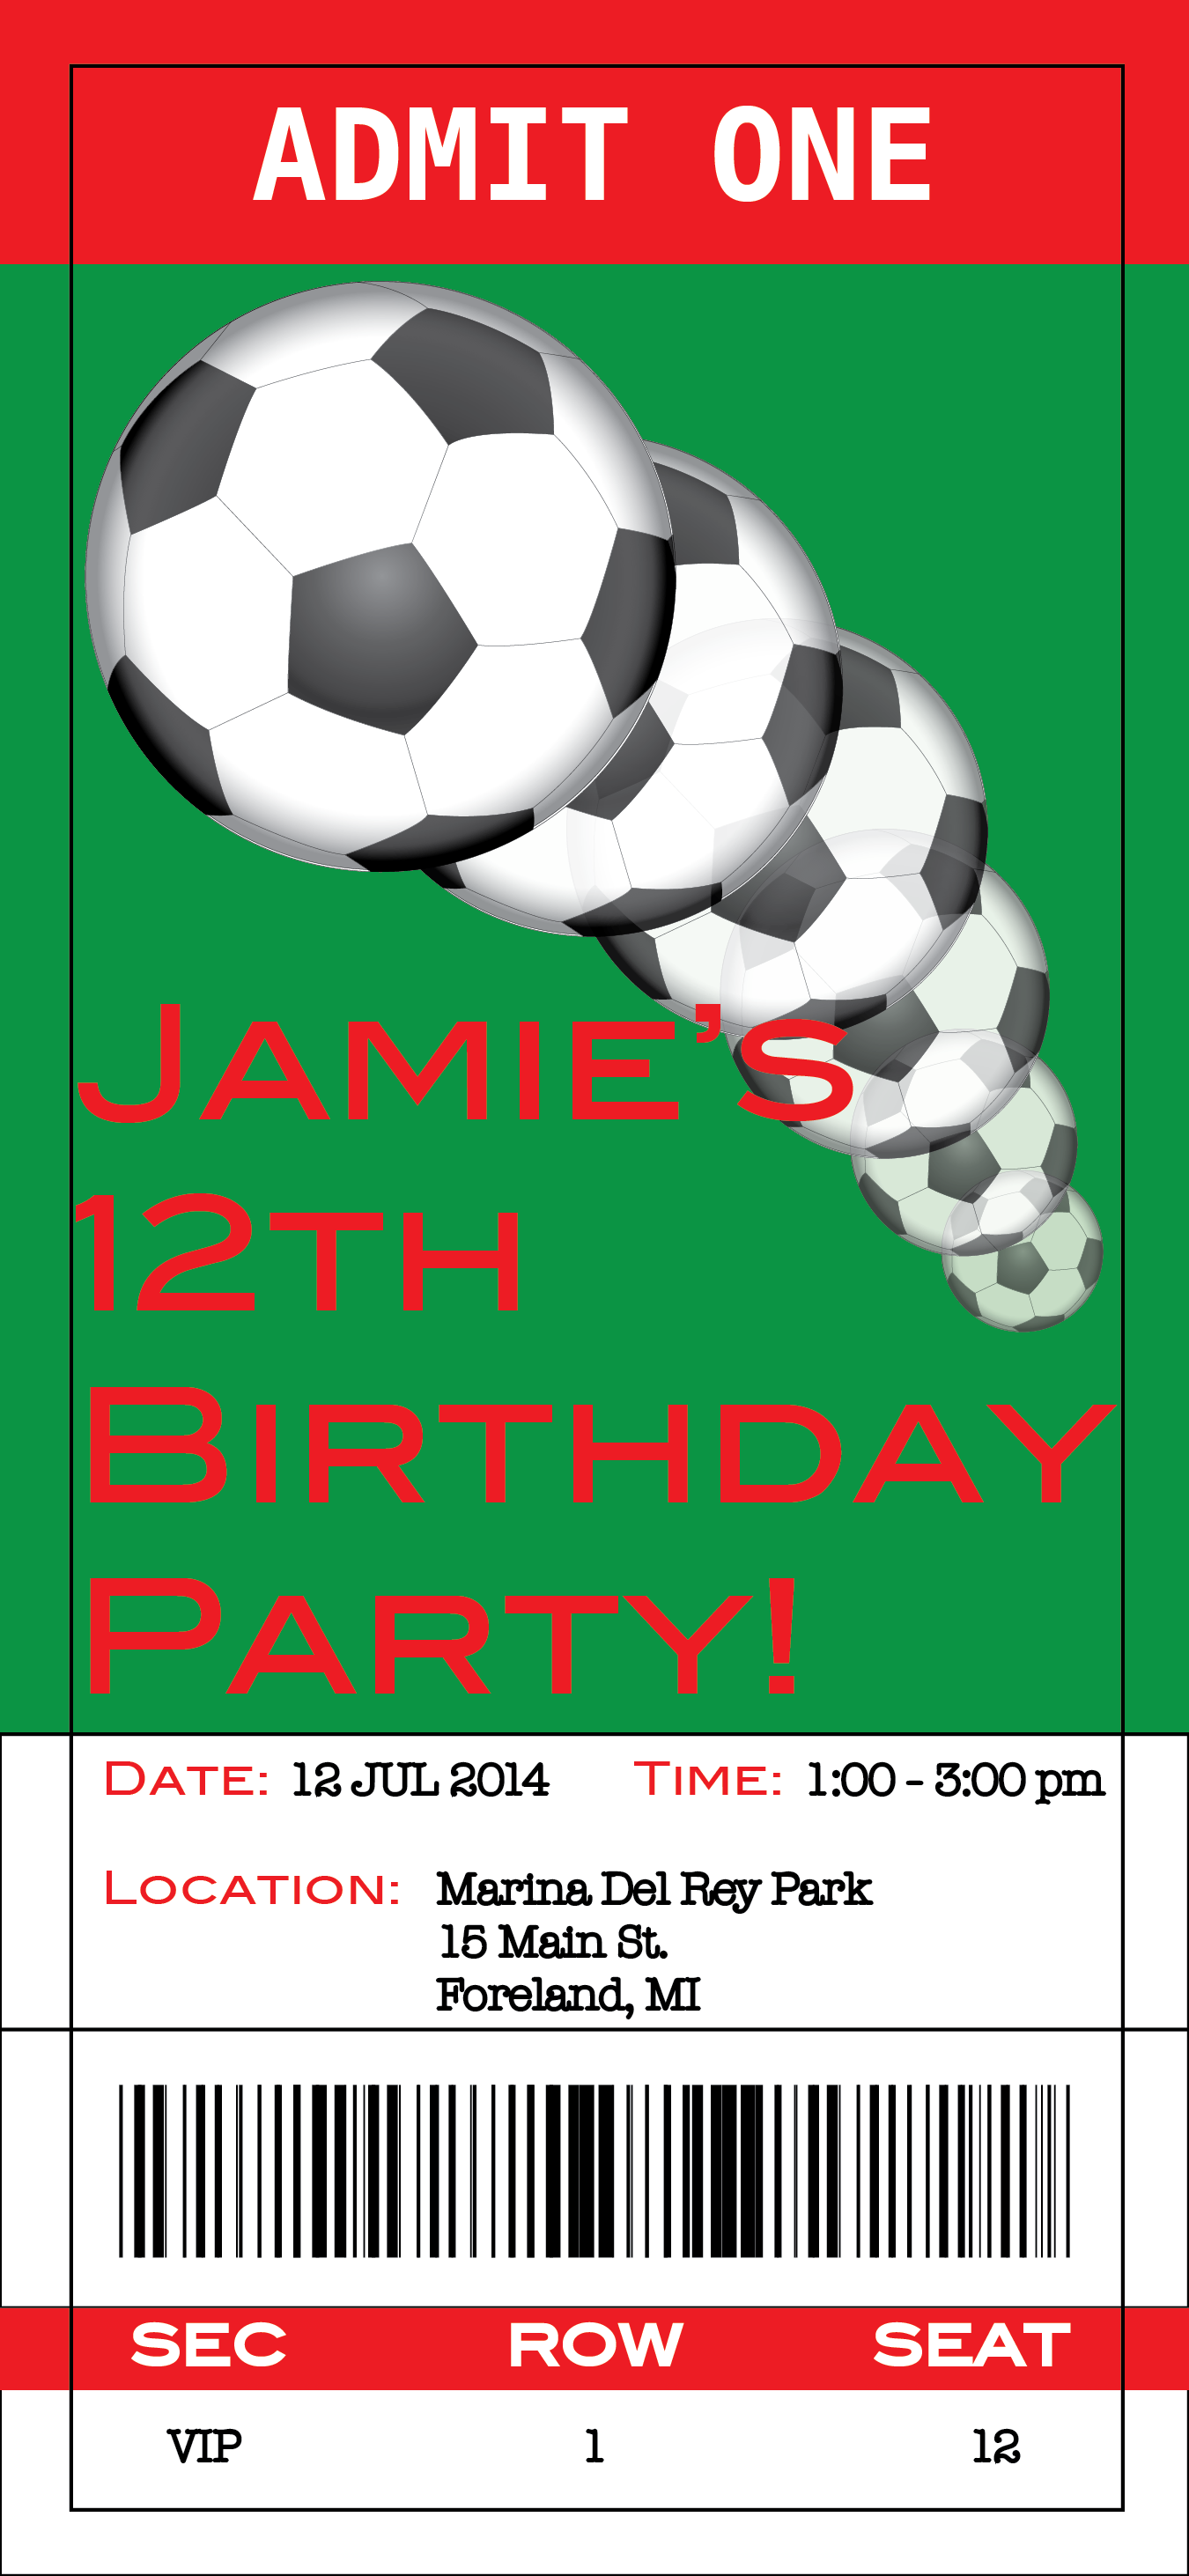 Soccer Party Ticket Invitation Printable  Parties